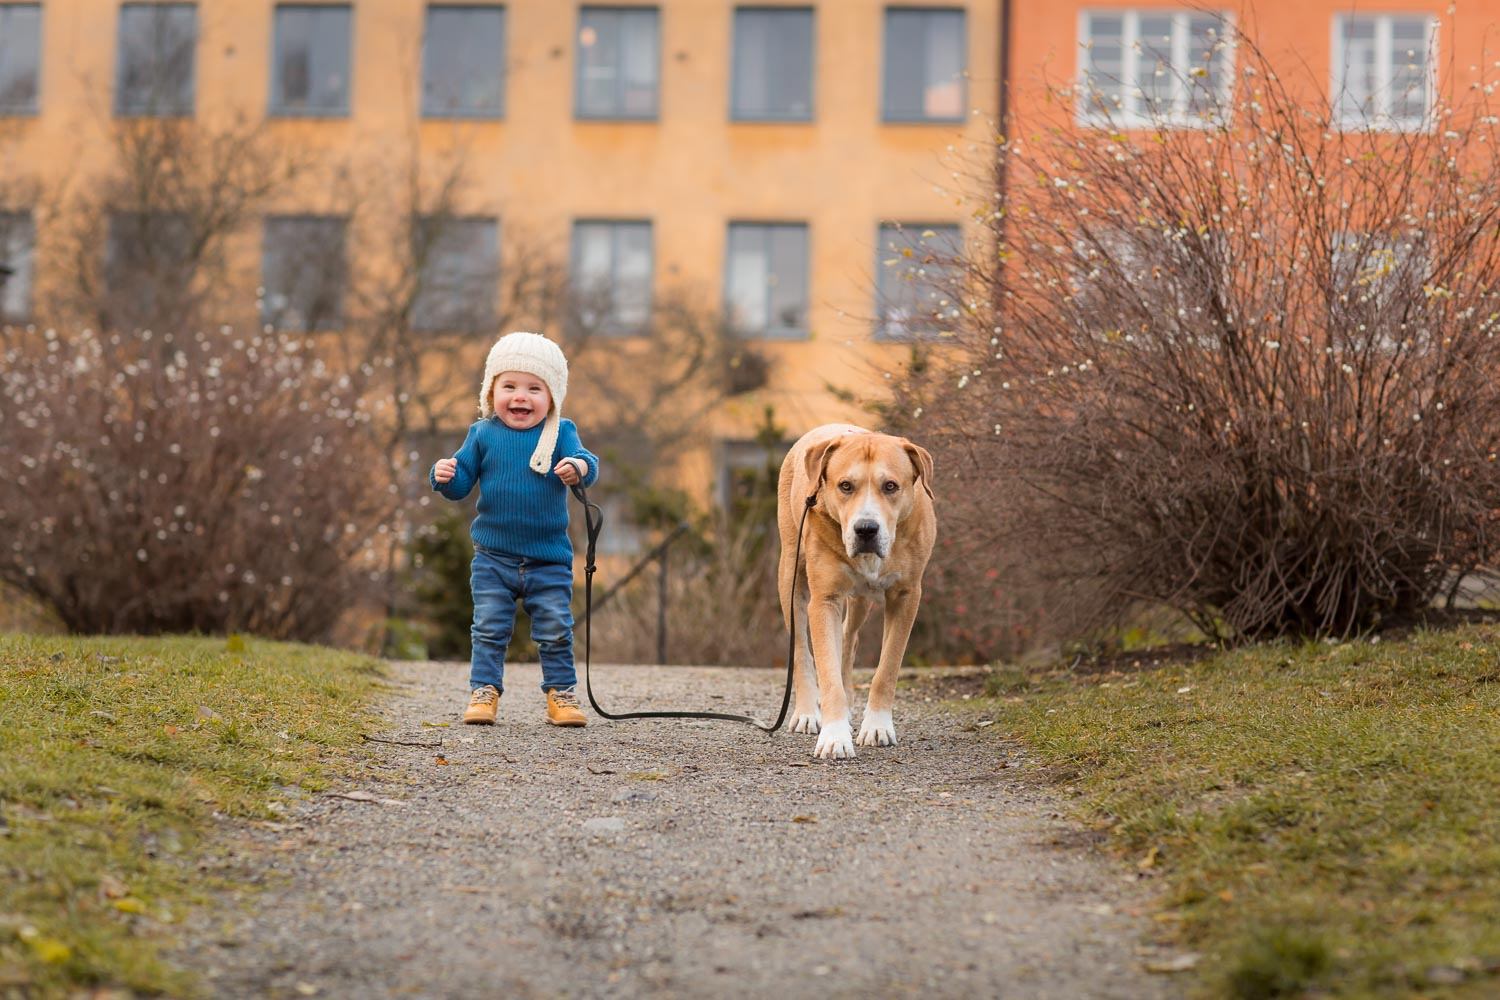 A-photo-of-a-little-girl-and-her-dog-in-Stockholm-by-Sandra-Jolly.jpg